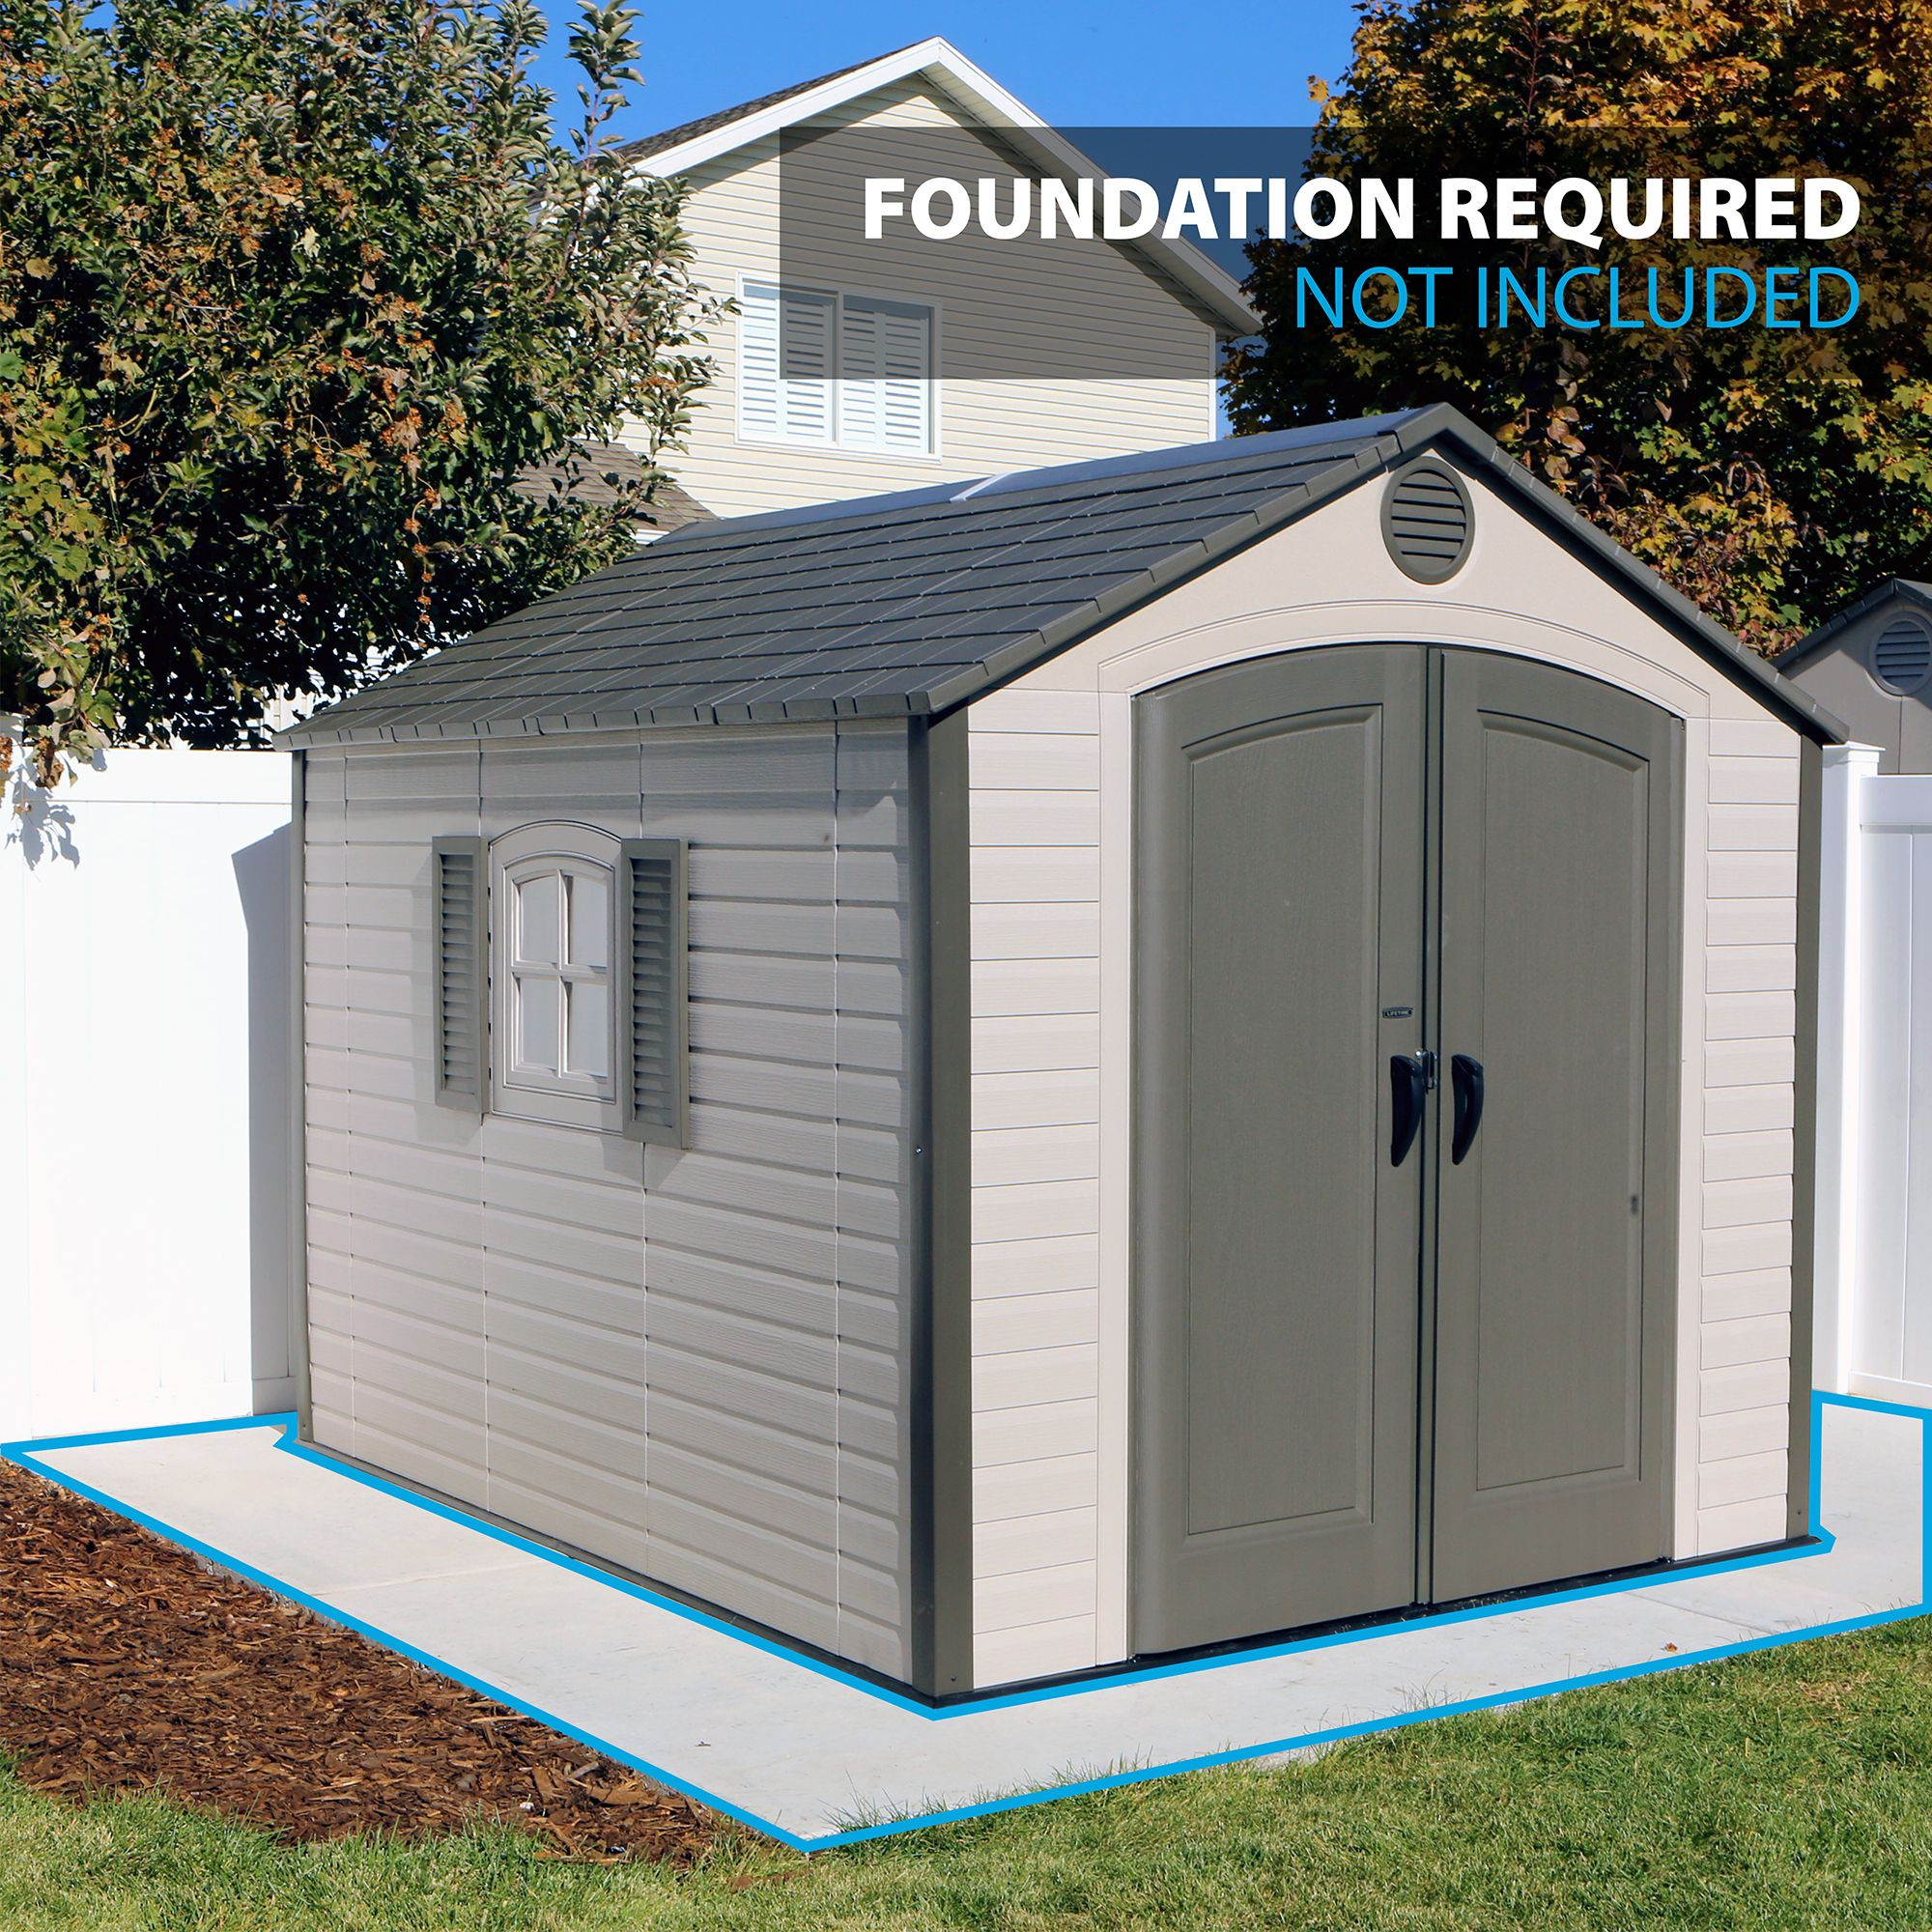 Details about Lifetime 8' x 10' Storage Shed Garden Backyard Toolshed House  lawn waterproof